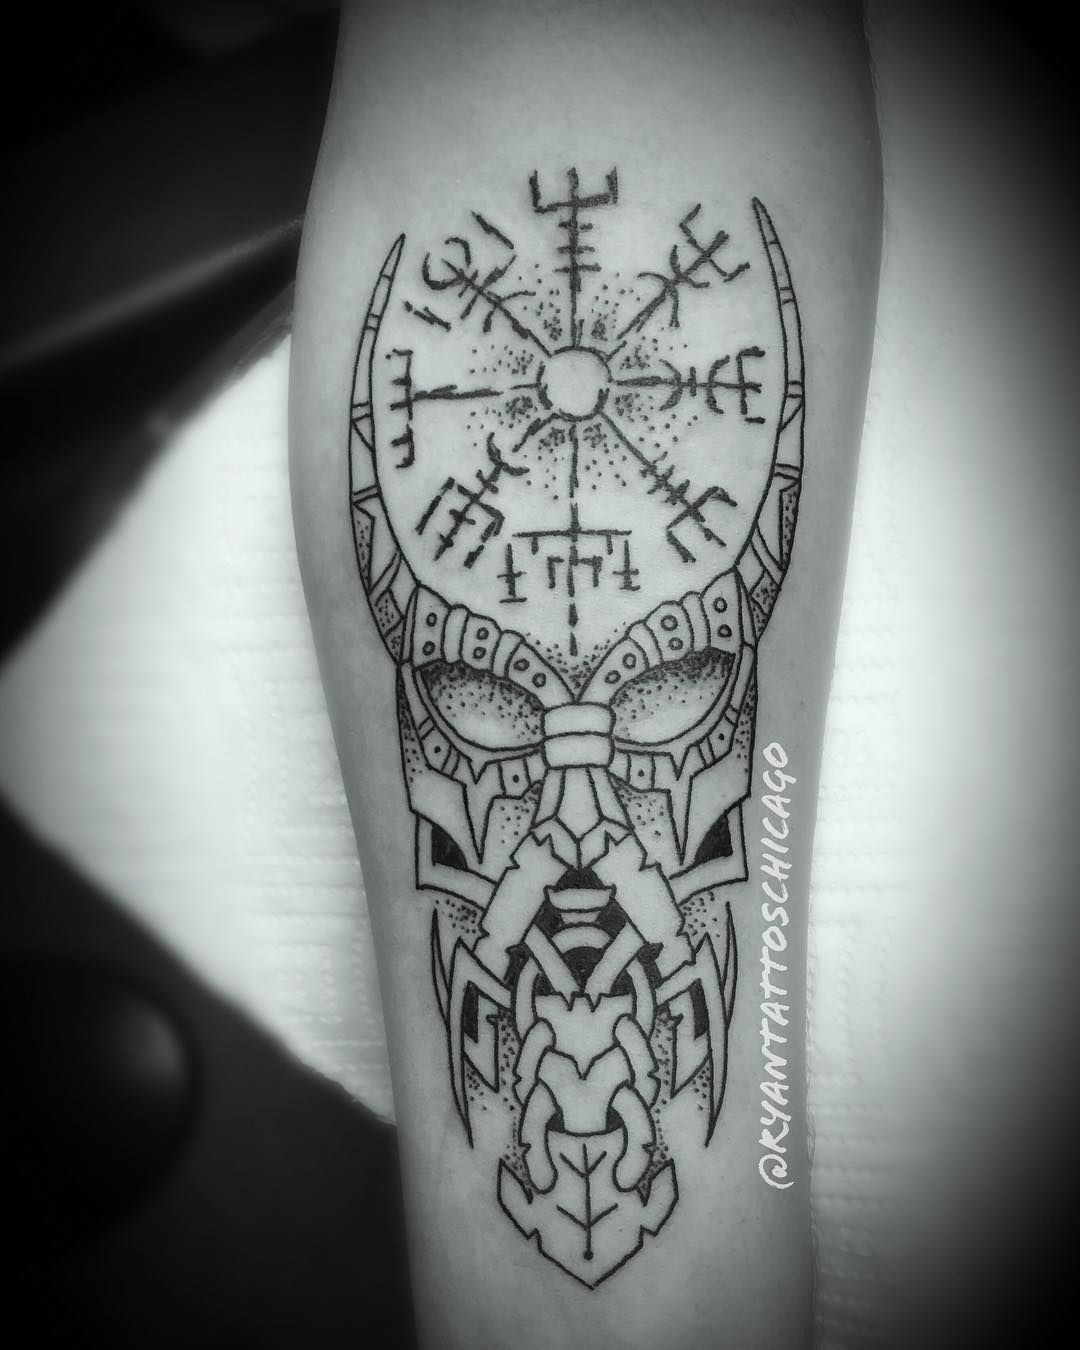 Fun Little Blackwork Vikingtattoo From A While Back Just Forgot To Post Thanks For Lookin Chicagotattooartist In 2020 Viking Compass Tattoo Sleeve Tattoos Tattoos